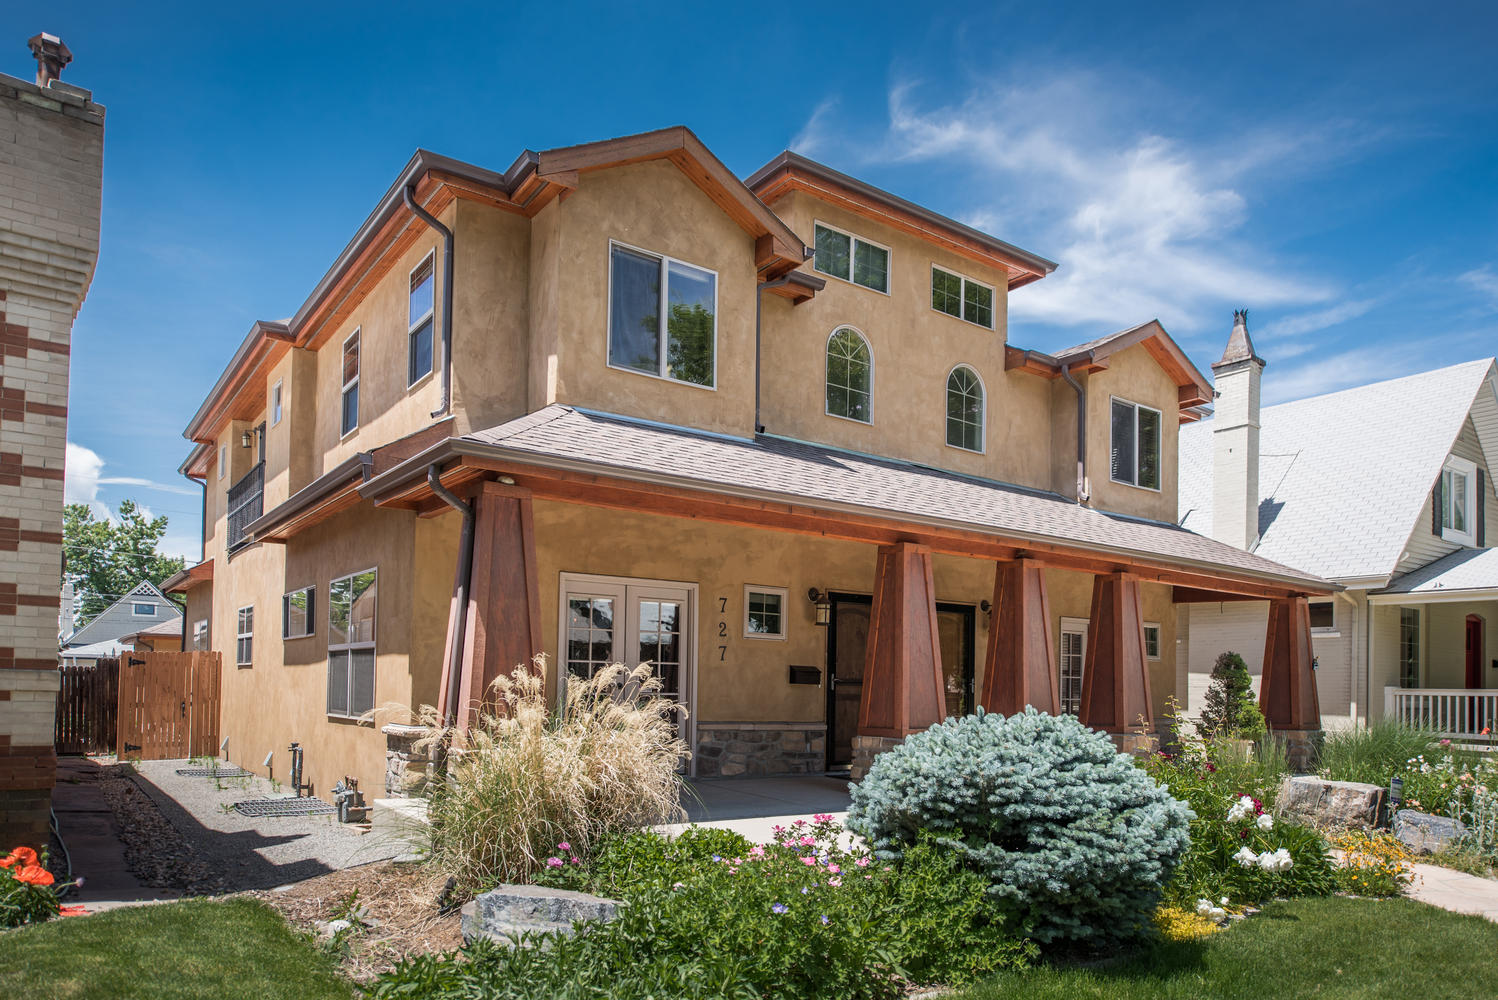 Duplex for Sale at Light & Bright Wash Park Duplex with Great Outdoor Space! 725 South Emerson Street Denver, Colorado, 80209 United States